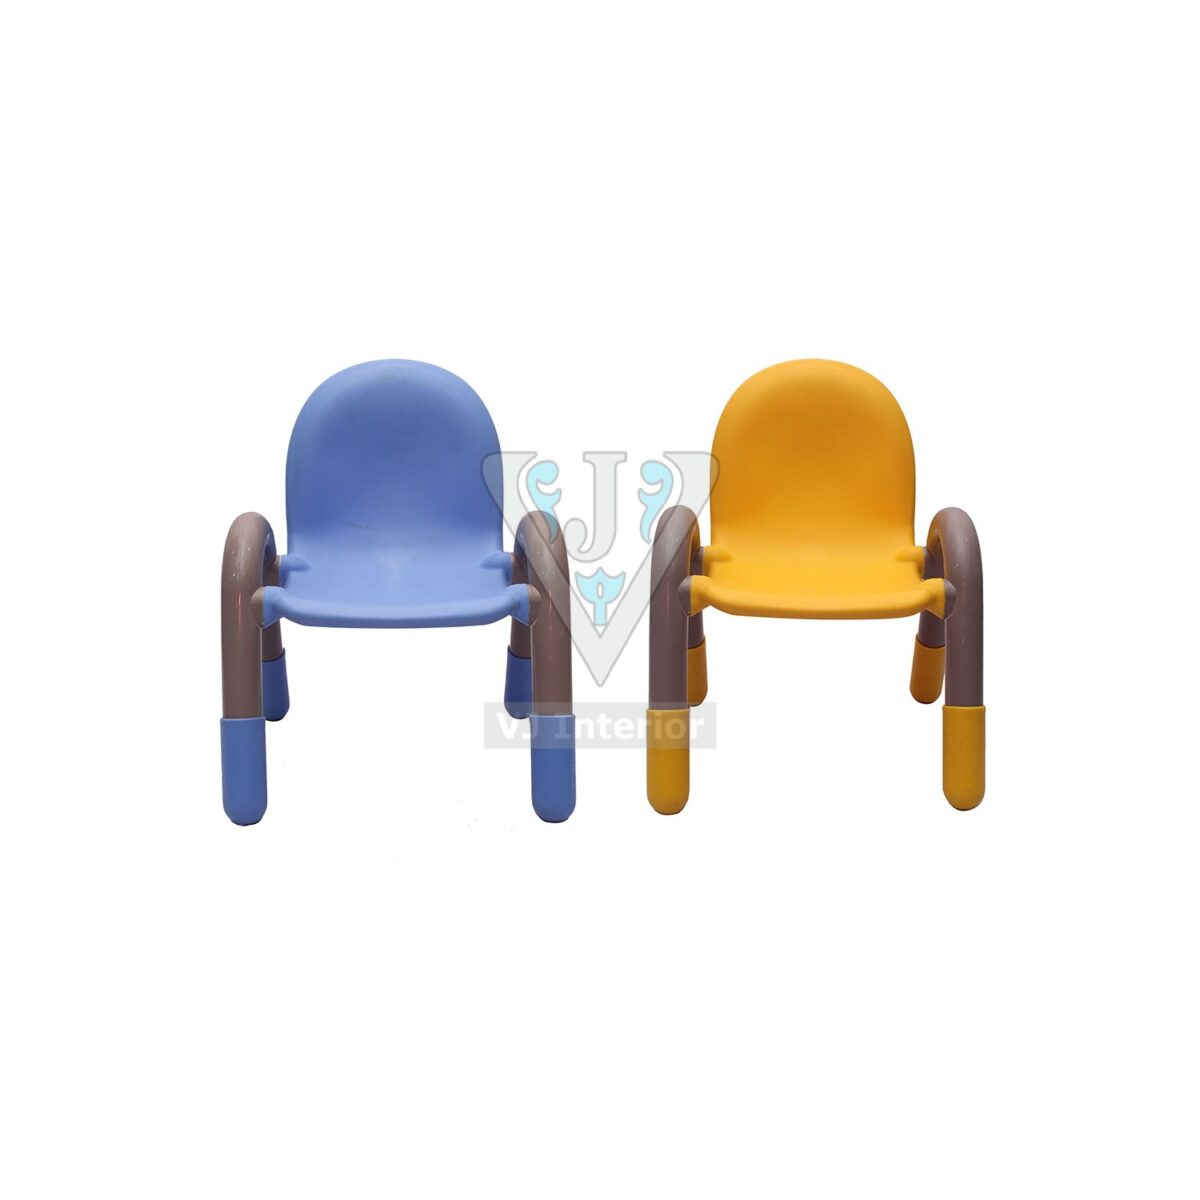 THE CHICO ENGINEERING PLASTIC KIDS CHAIR BLUE AND YELLOW PAIR